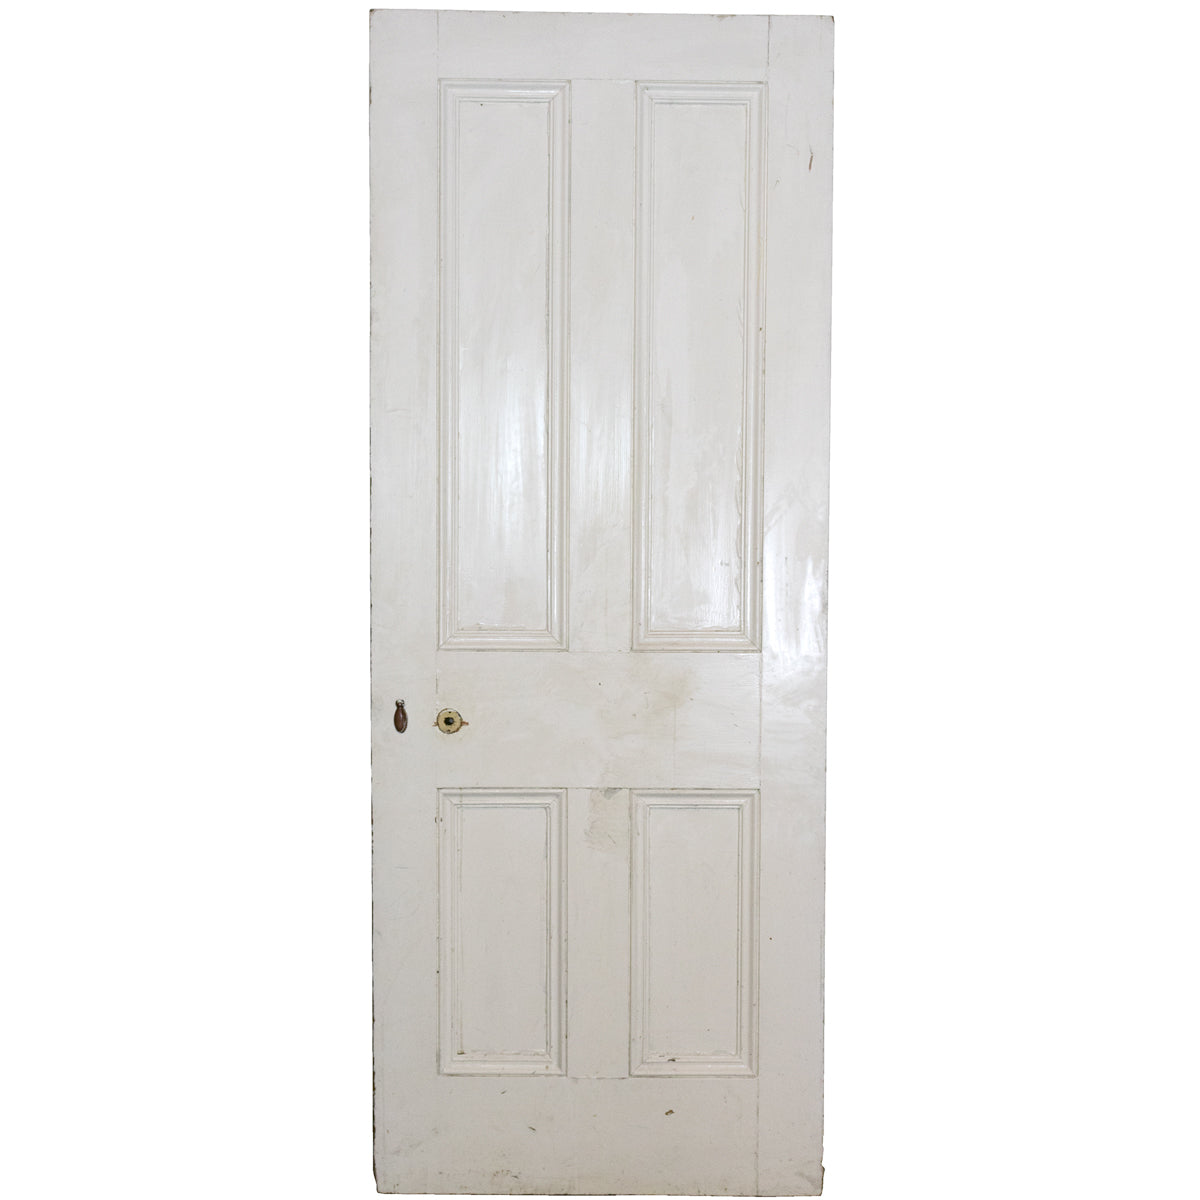 Antique Victorian 4 Panel Door - 195cm x 75.5cm